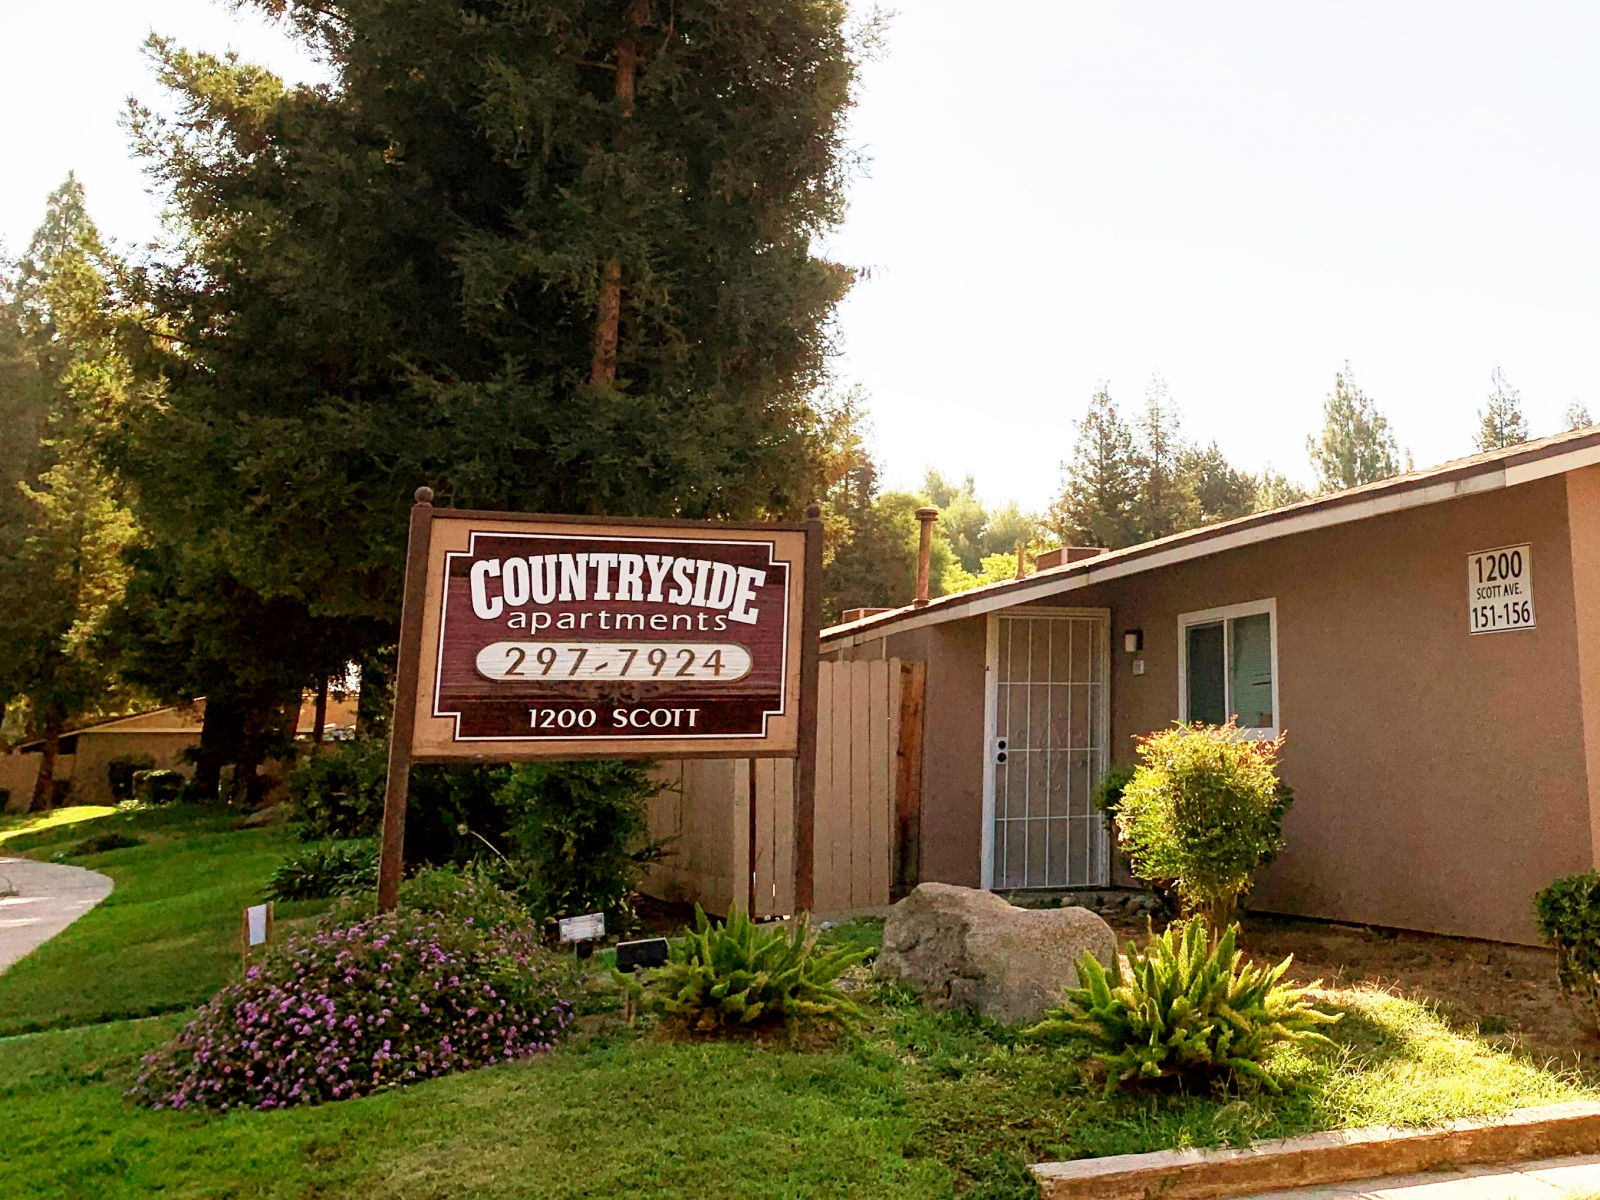 Clovis Apartment Group Countryside Apartments For Rent